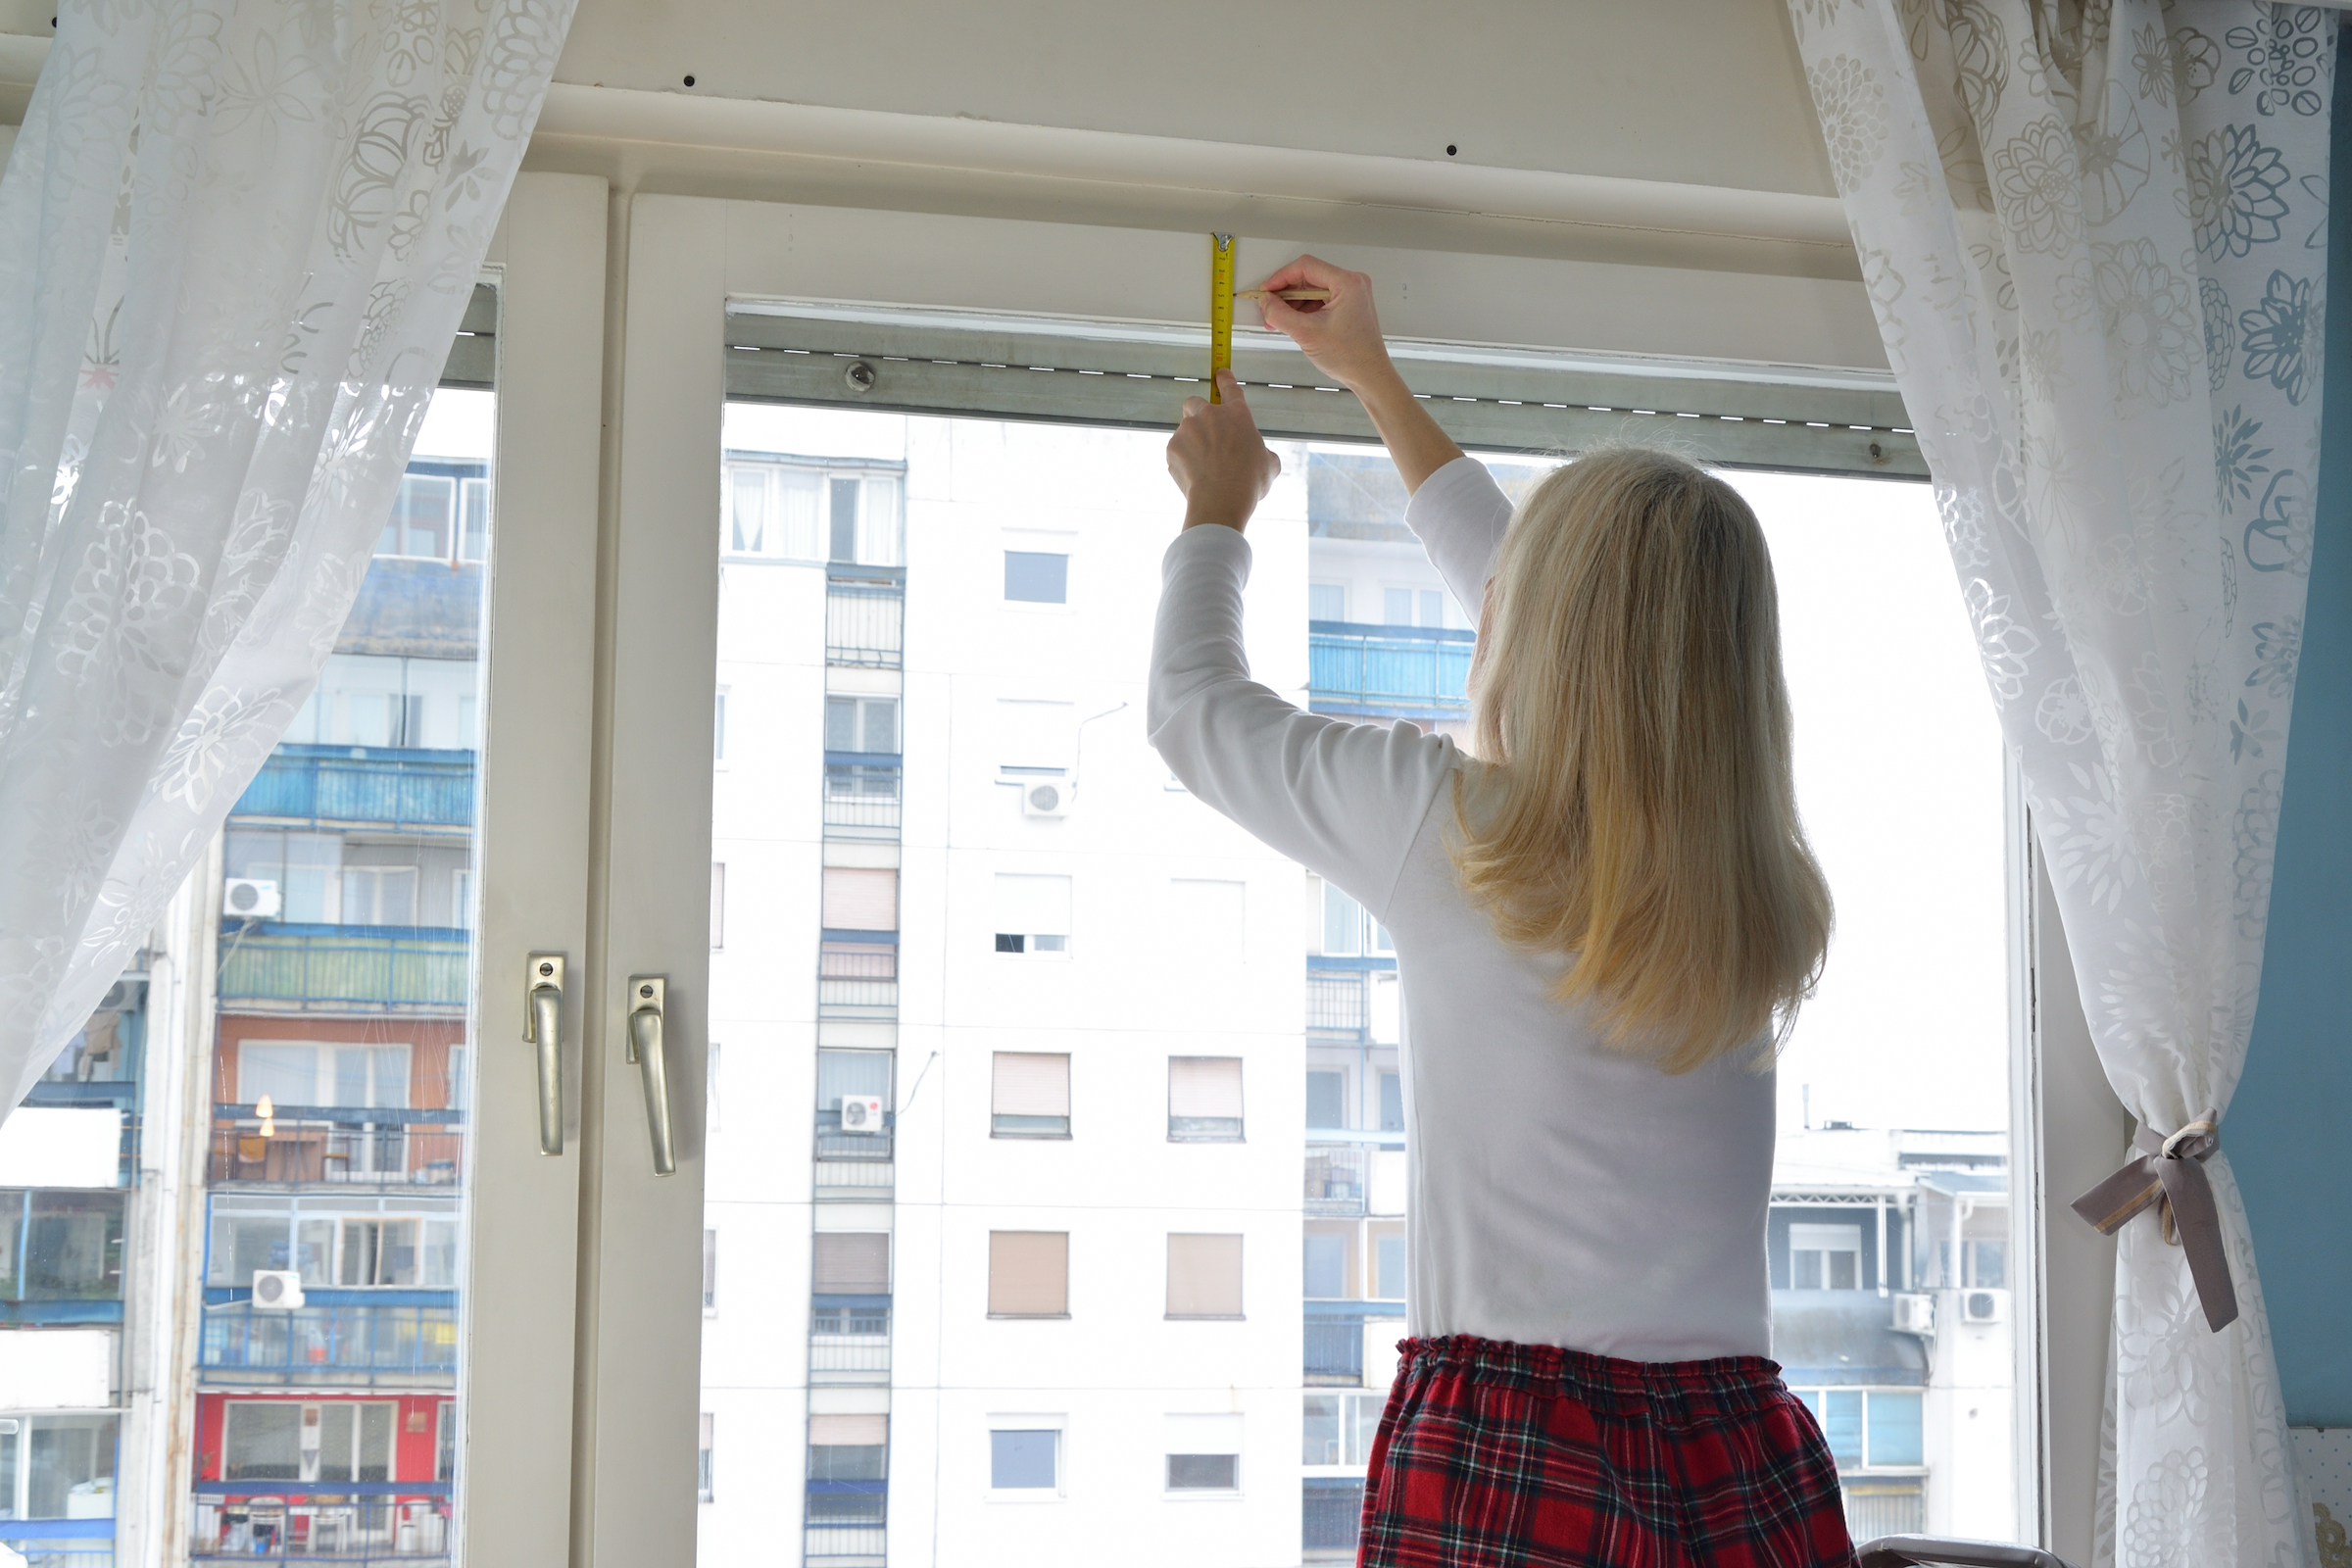 Make sure to measure your windows before you purchase and install the blinds.